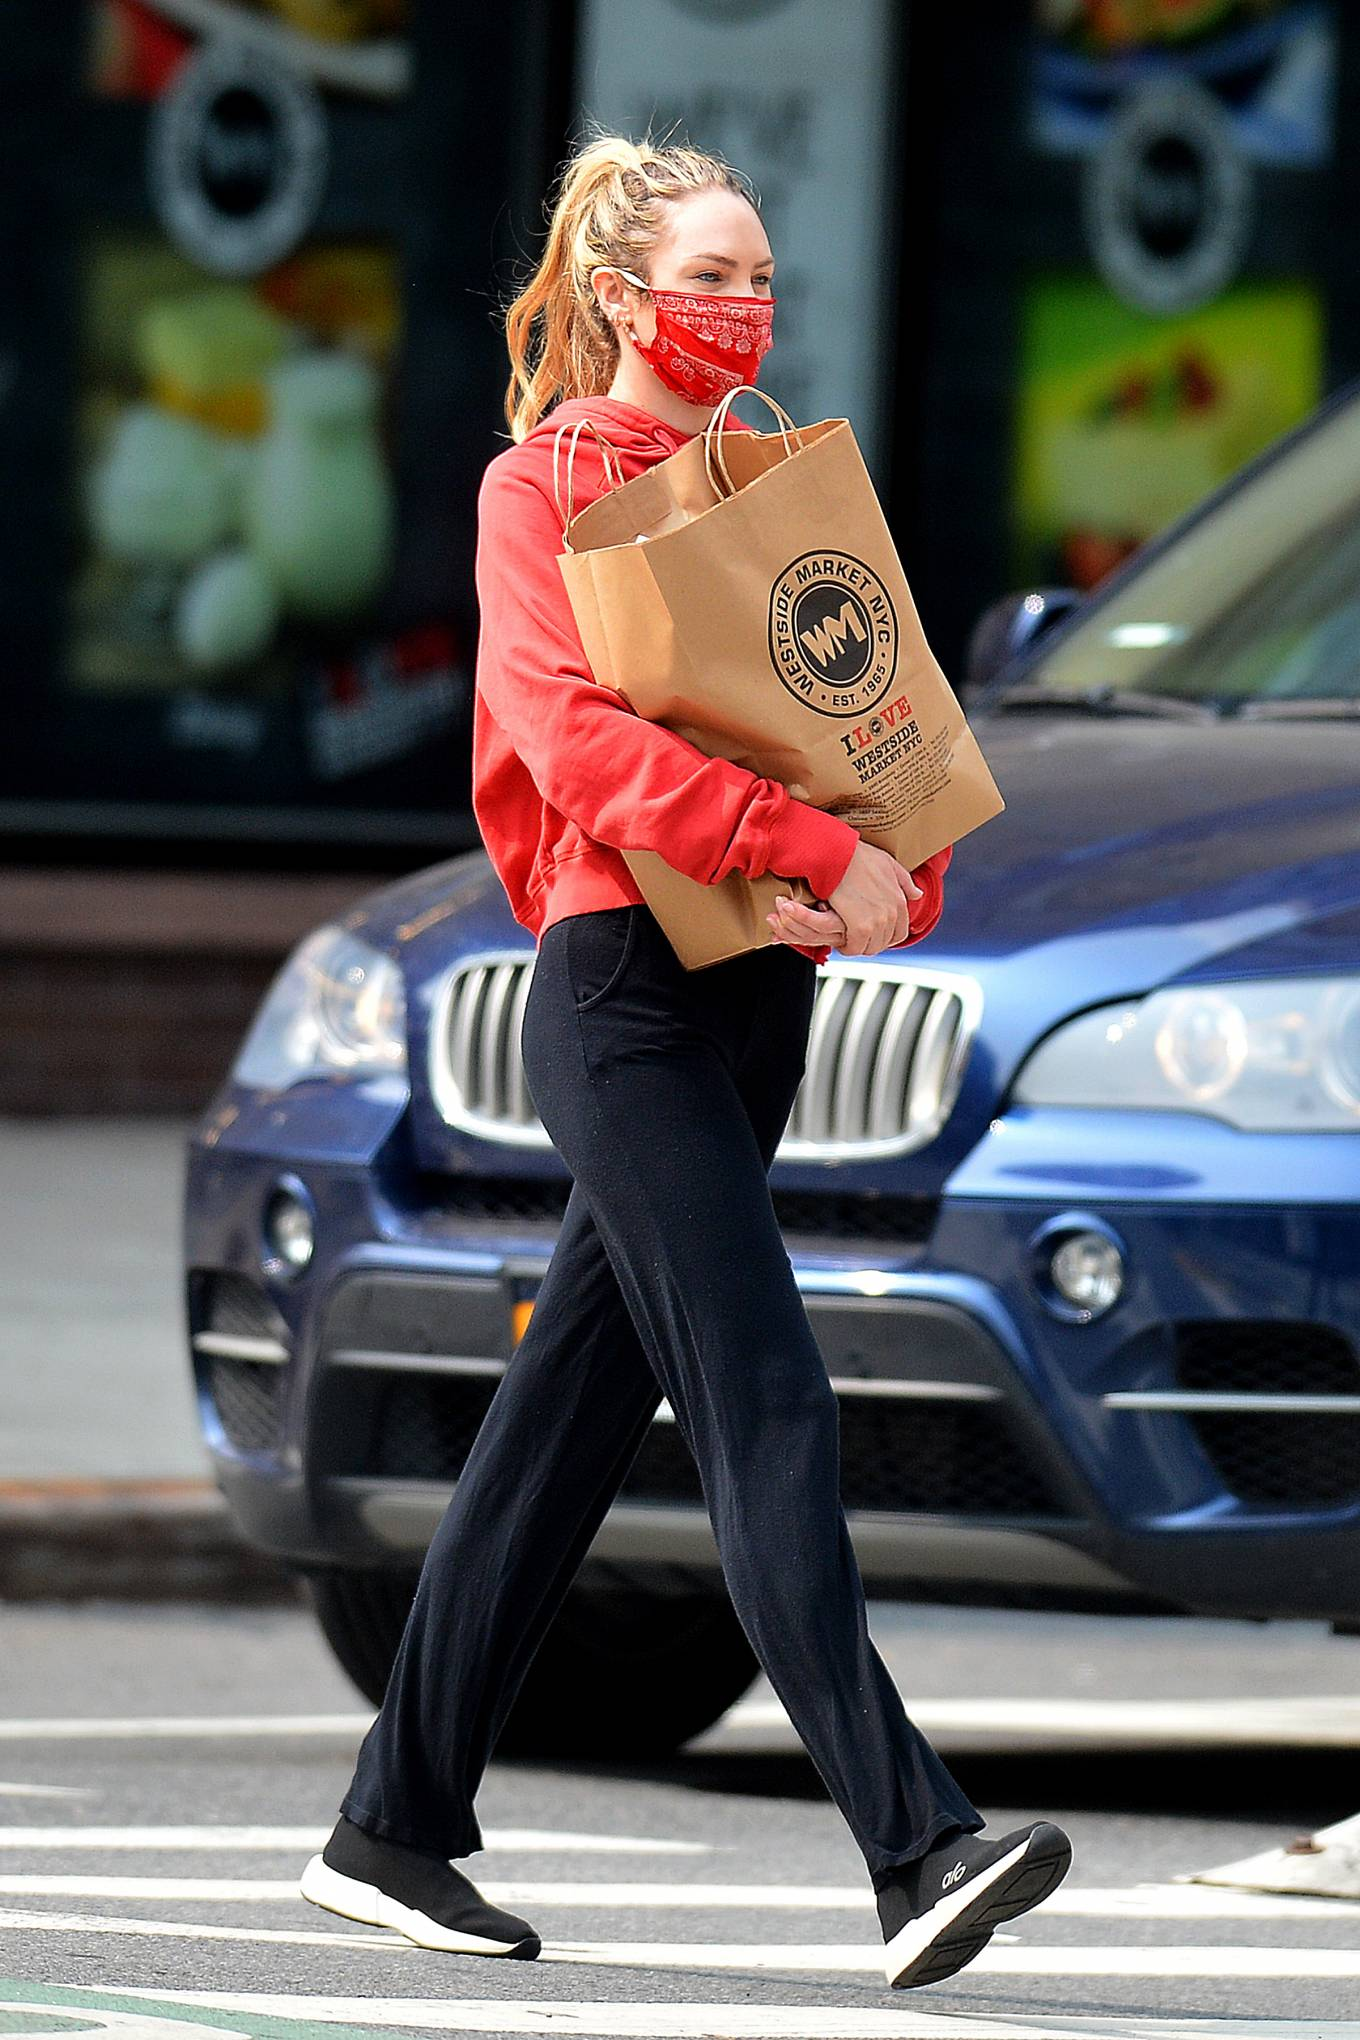 Candice Swanepoel 2020 : Candice Swanepoel – Grocery shopping candids in New York City -06